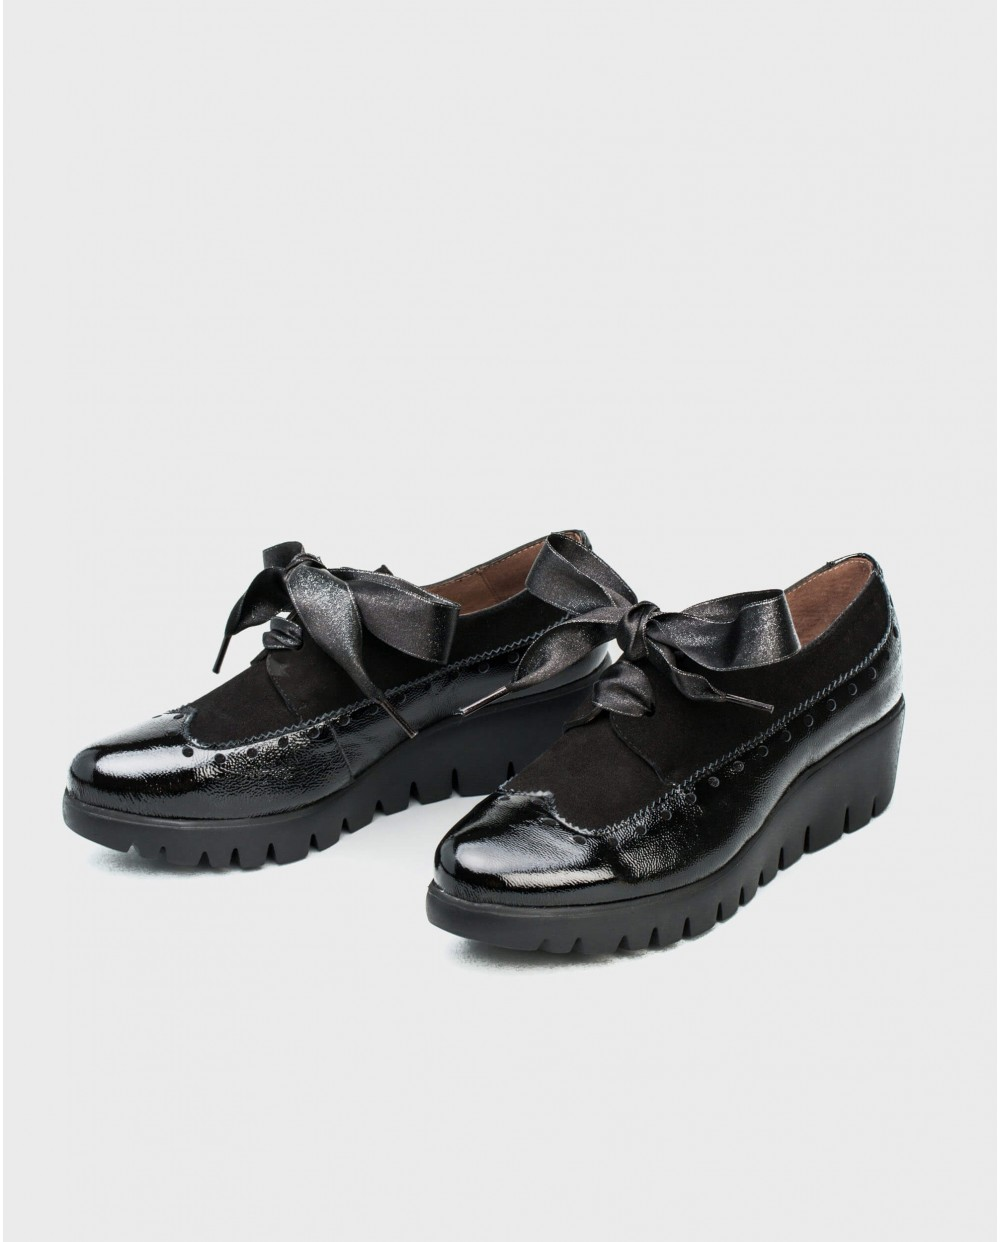 Wonders-Wedges-Patent leather sneaker with satin ribbon